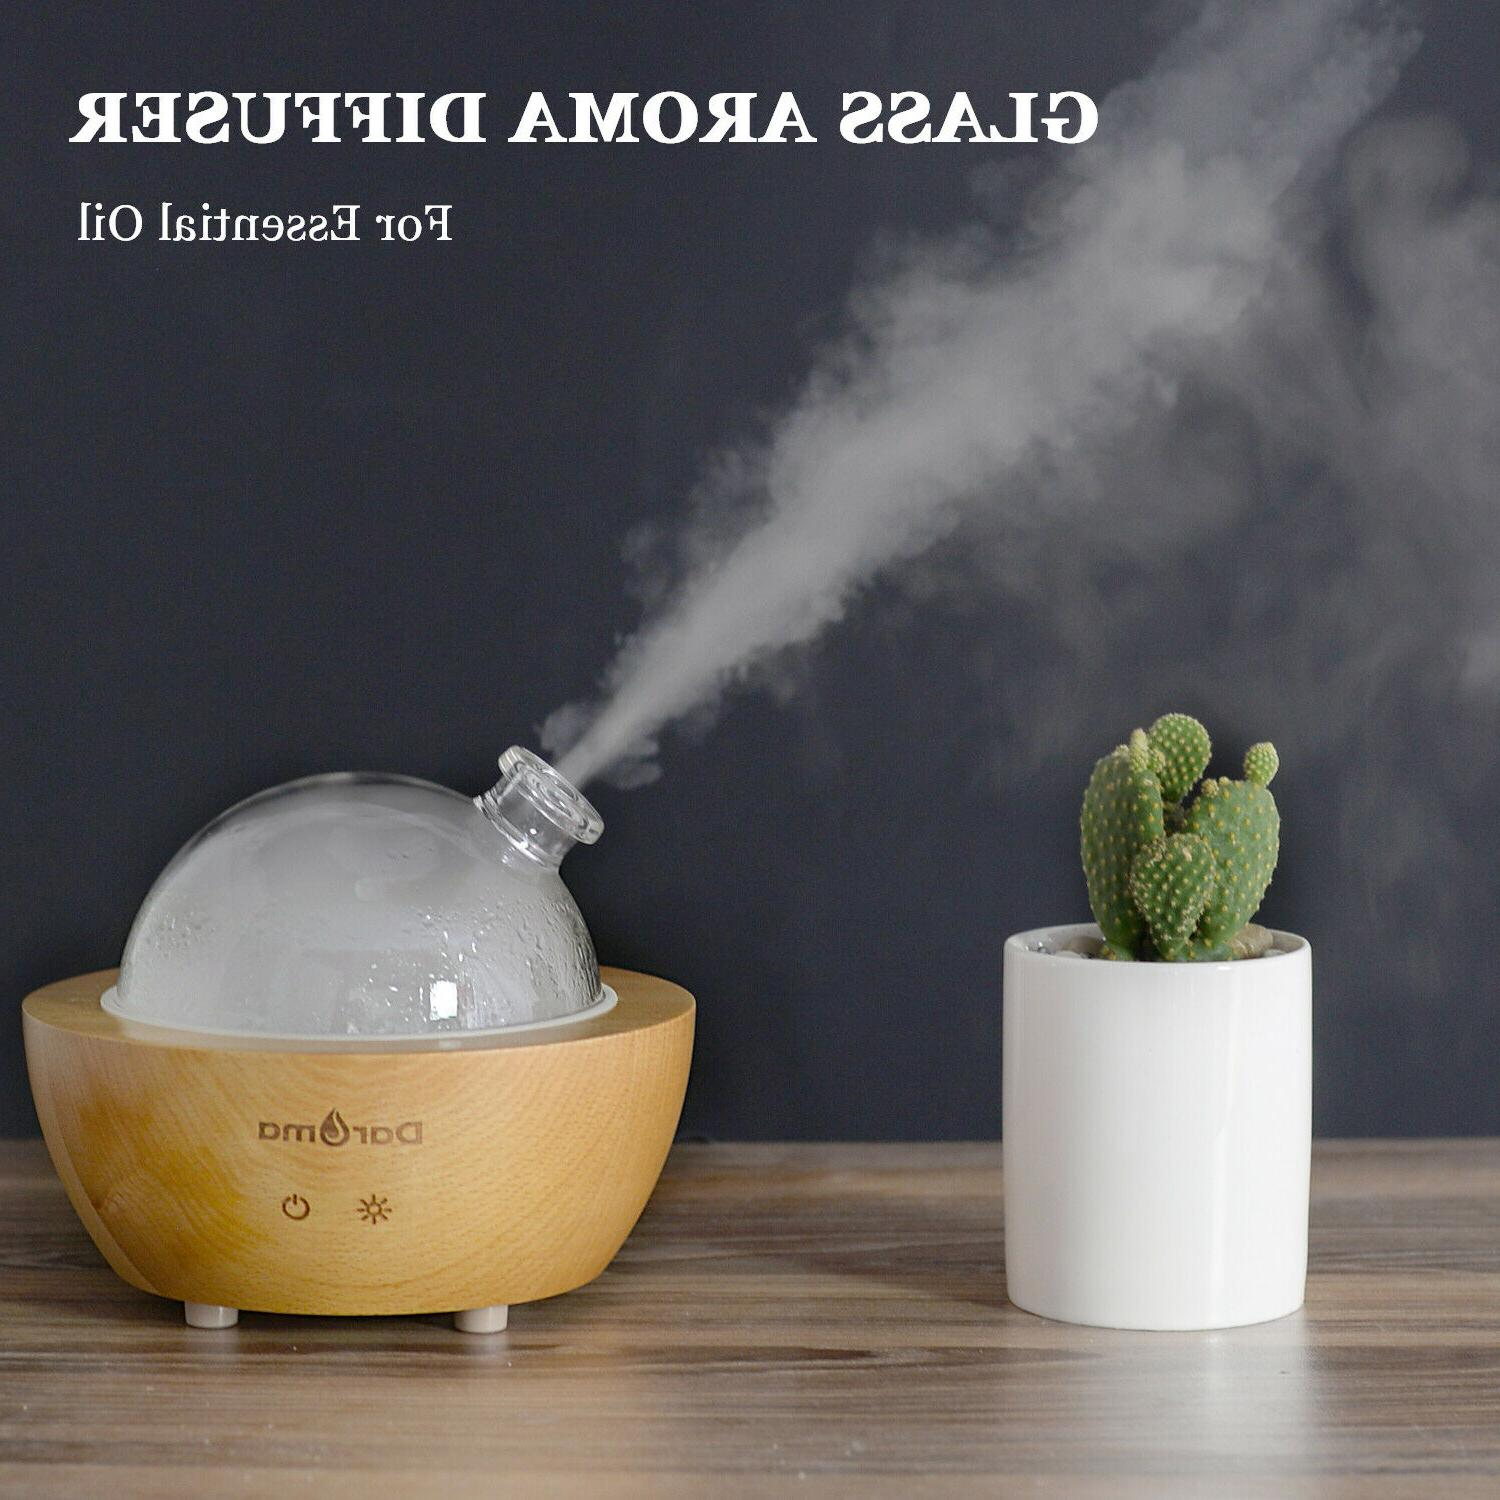 Daroma Oil Diffuser,200ml Base,AirRoom Humidifier